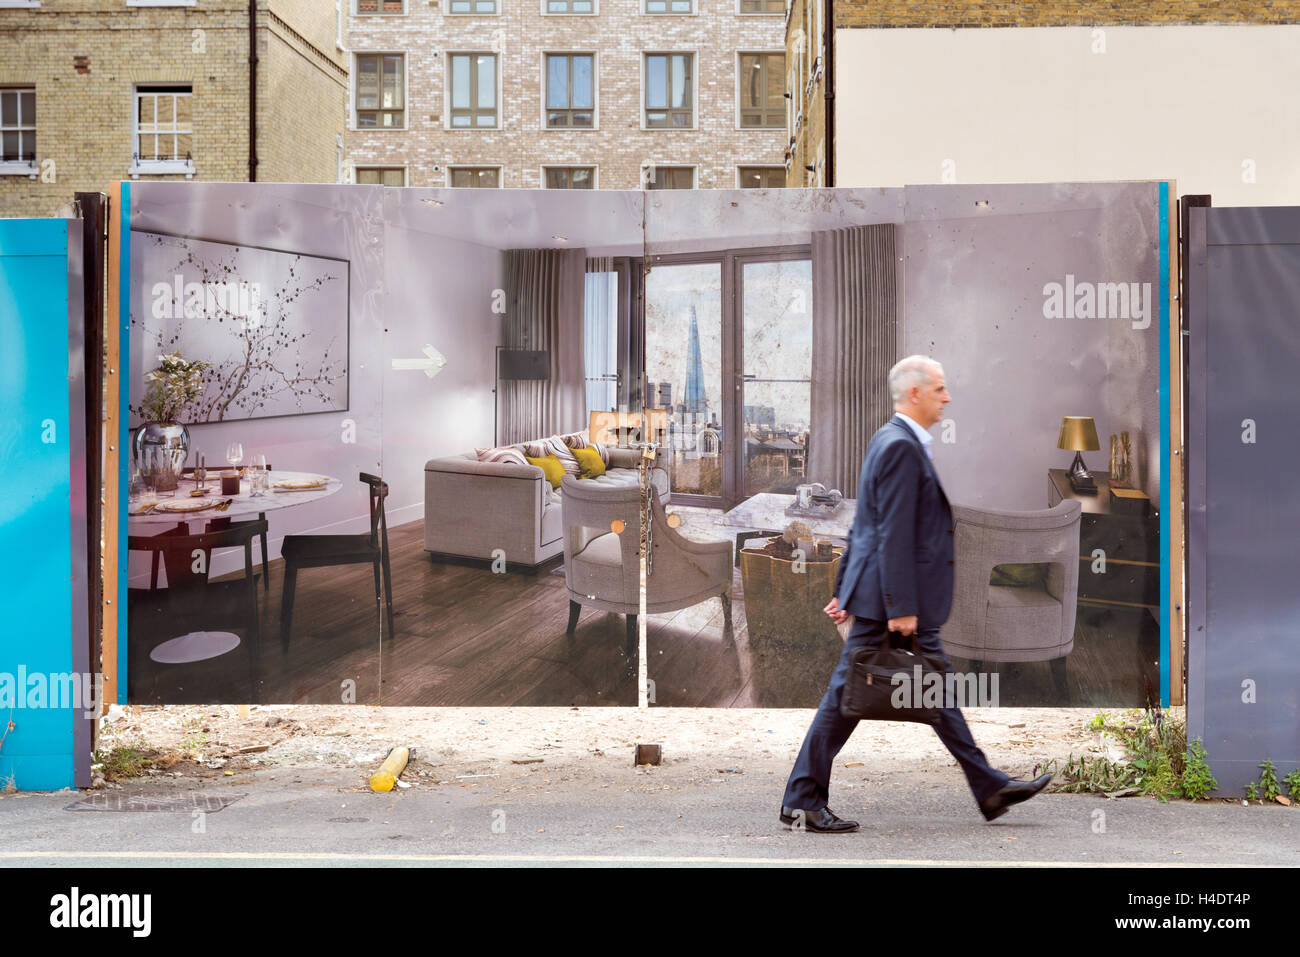 Hoarding showing the interior of new build apartments in a new property development in the City of London, England, - Stock Image